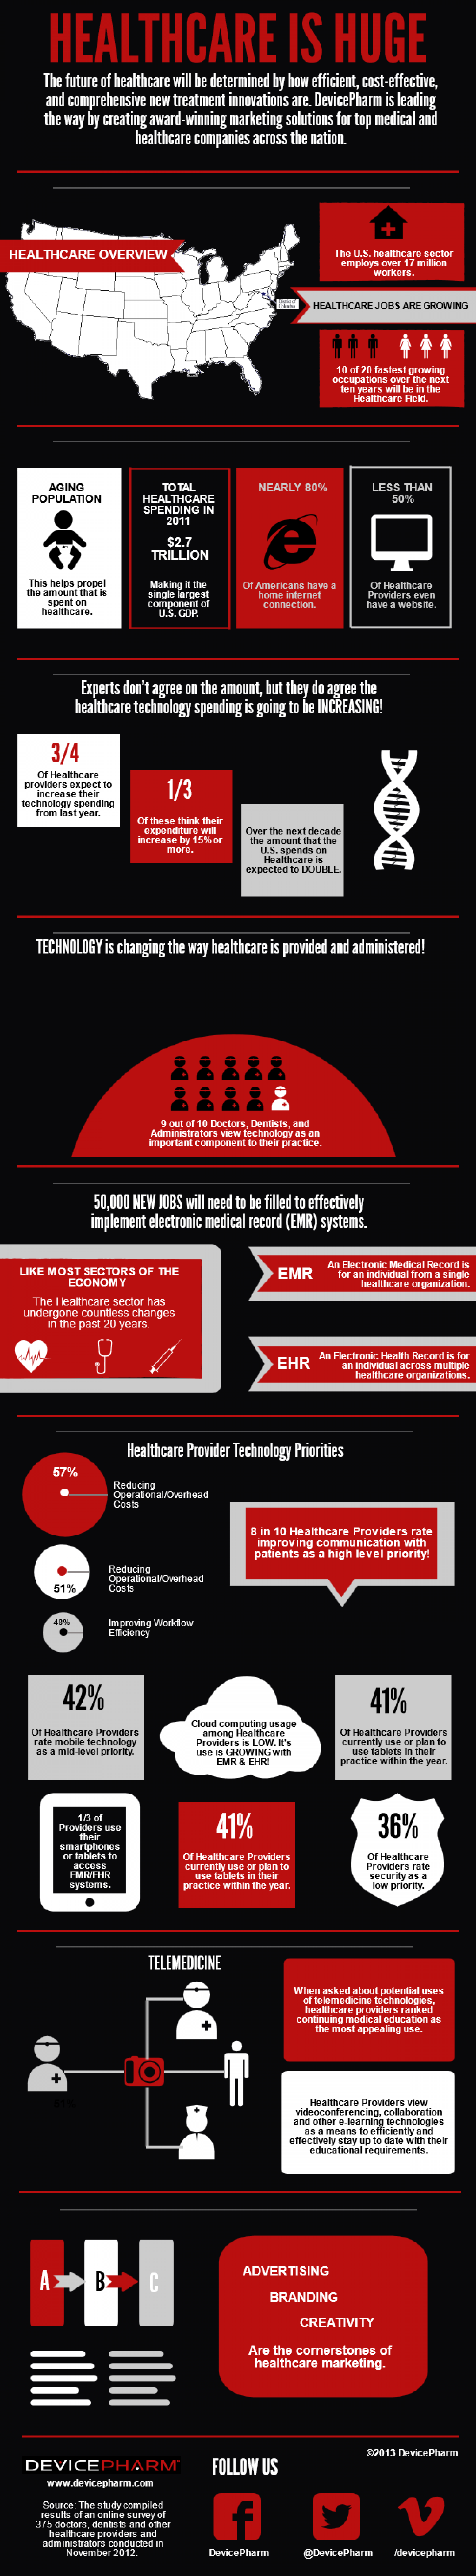 Healthcare is Huge Infographic